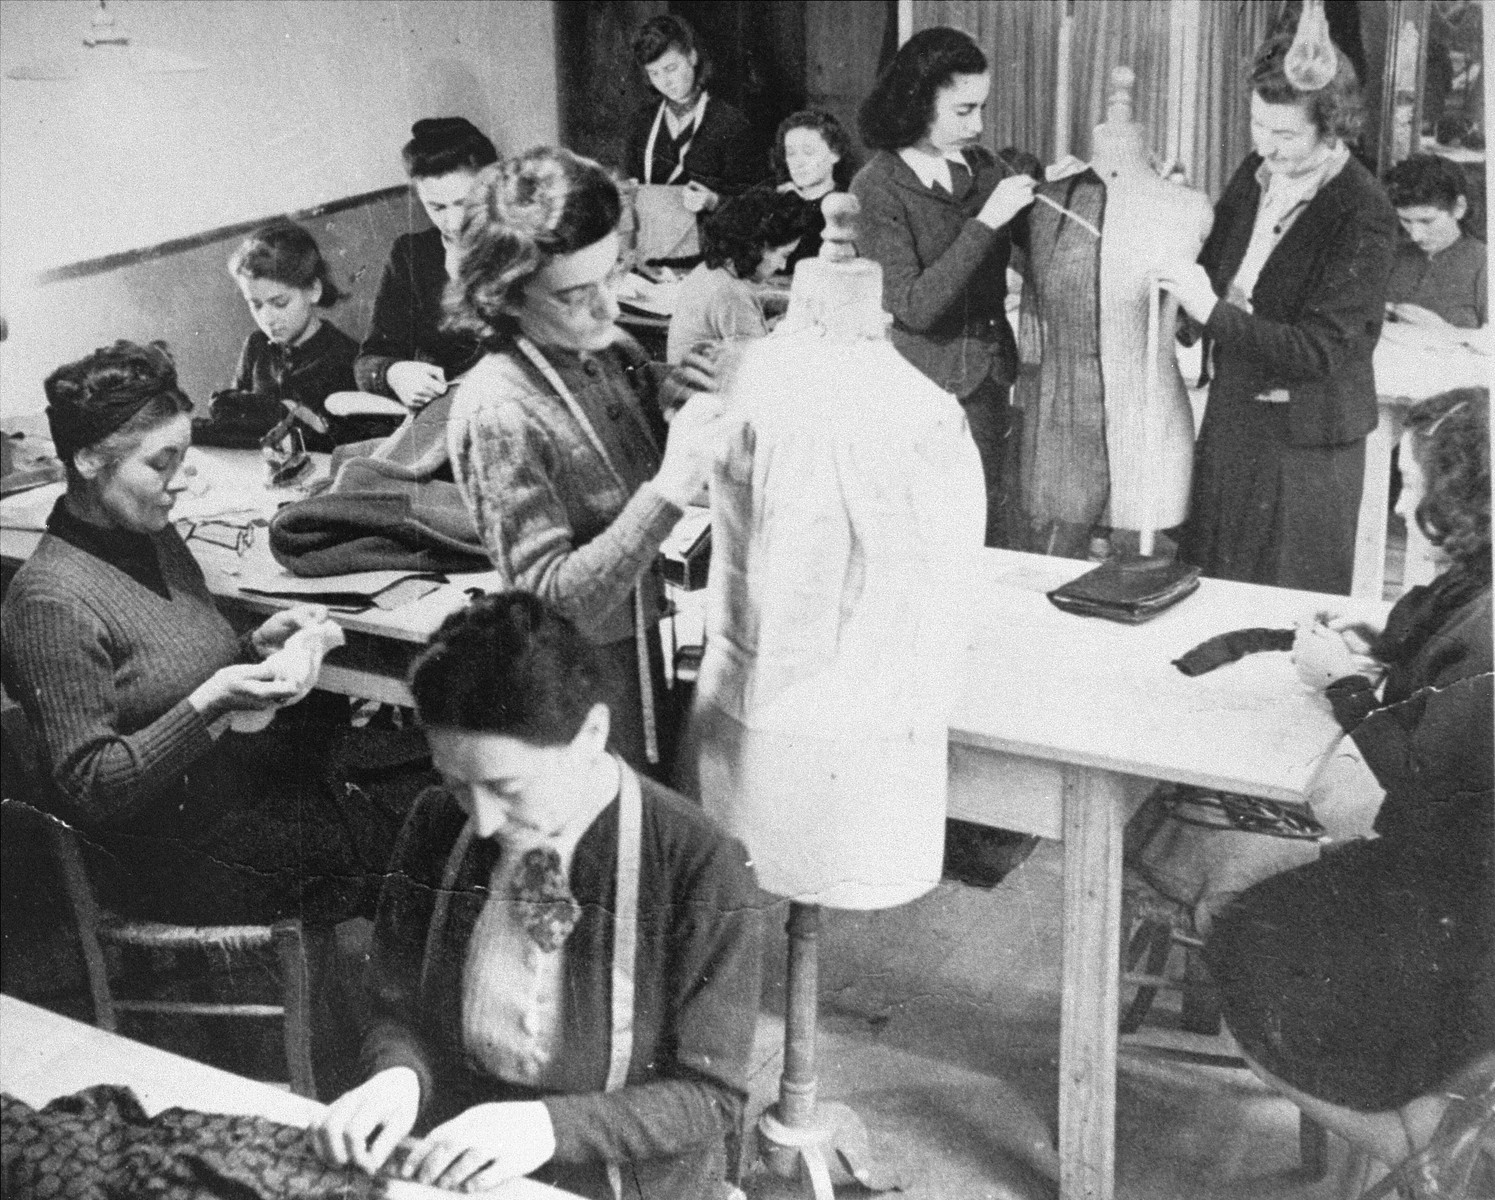 Women learn dressmaking at an ORT vocational school.    Pictured seated in the upper right hand corner is  Hermine Katz